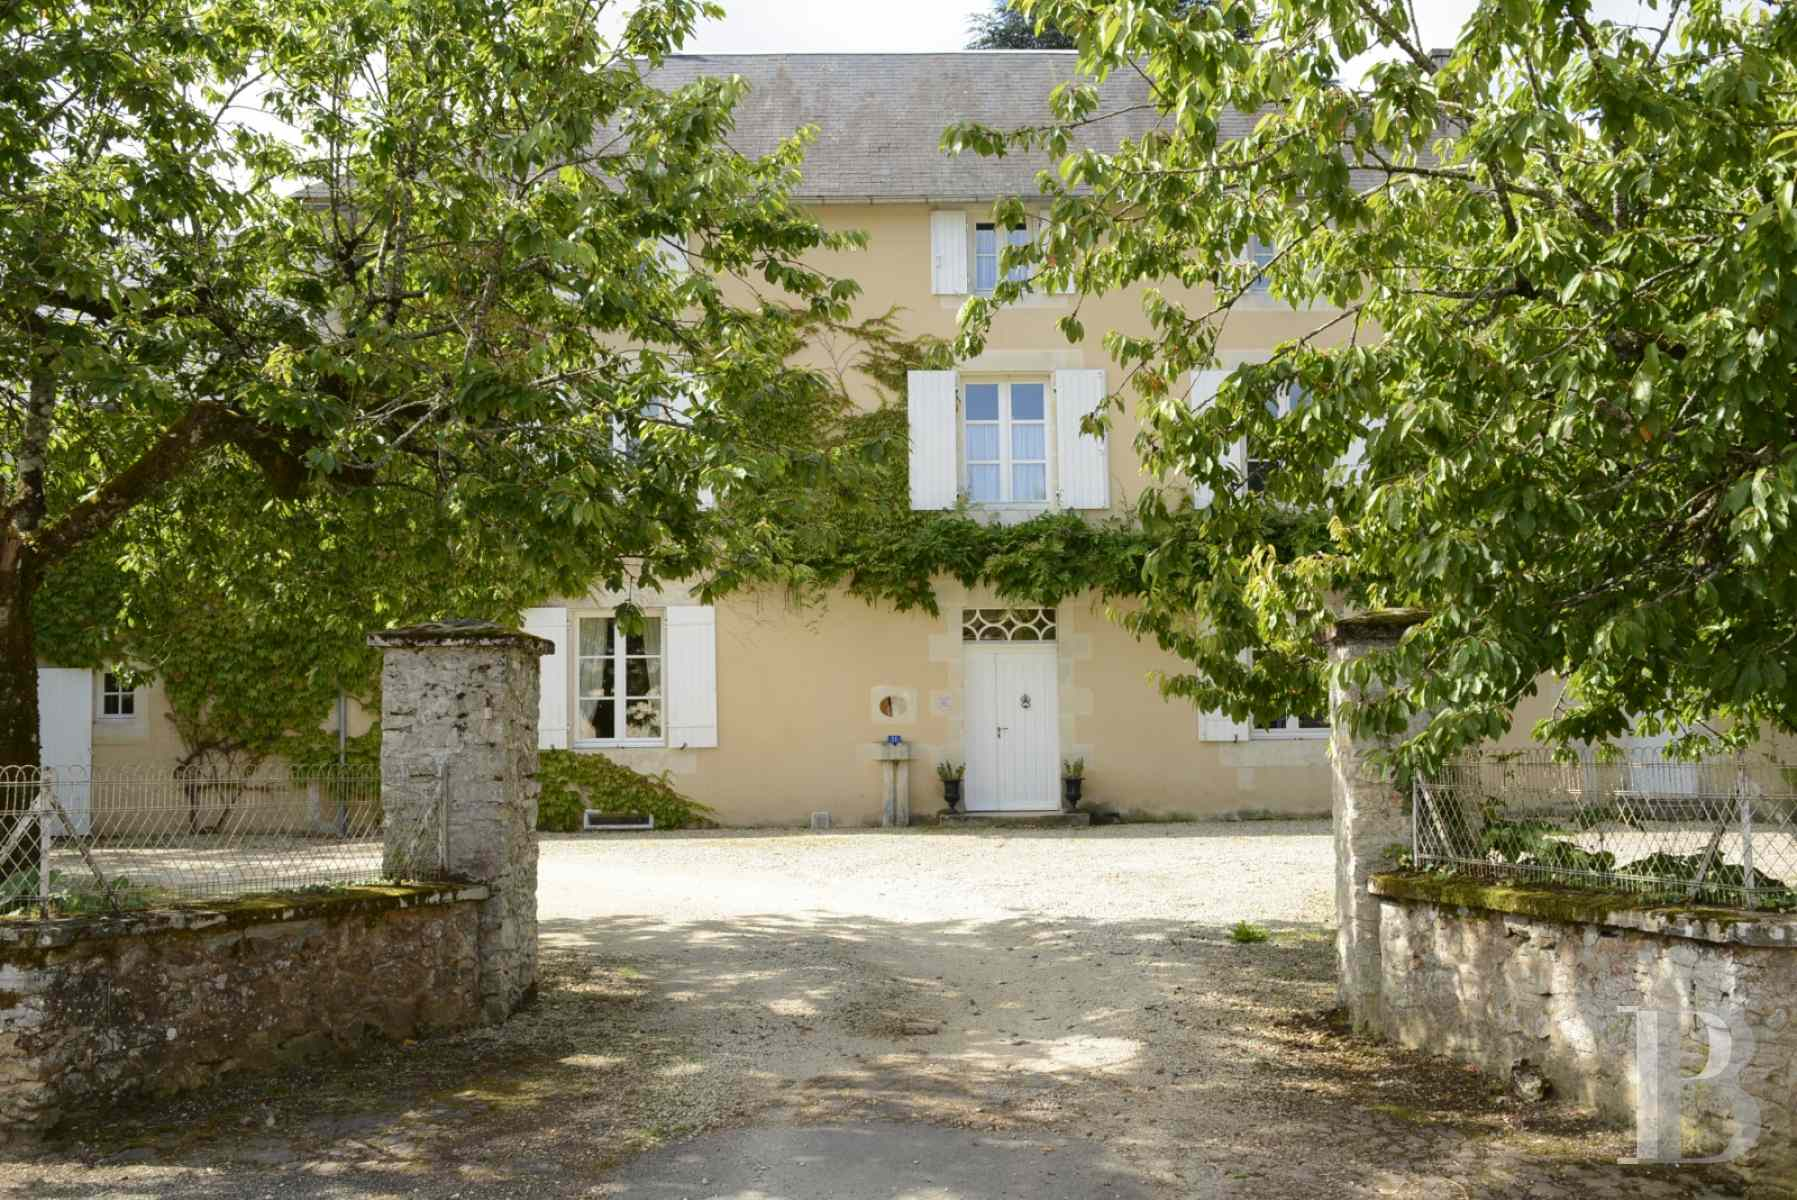 character properties France poitou charentes luxurious home - 3 zoom